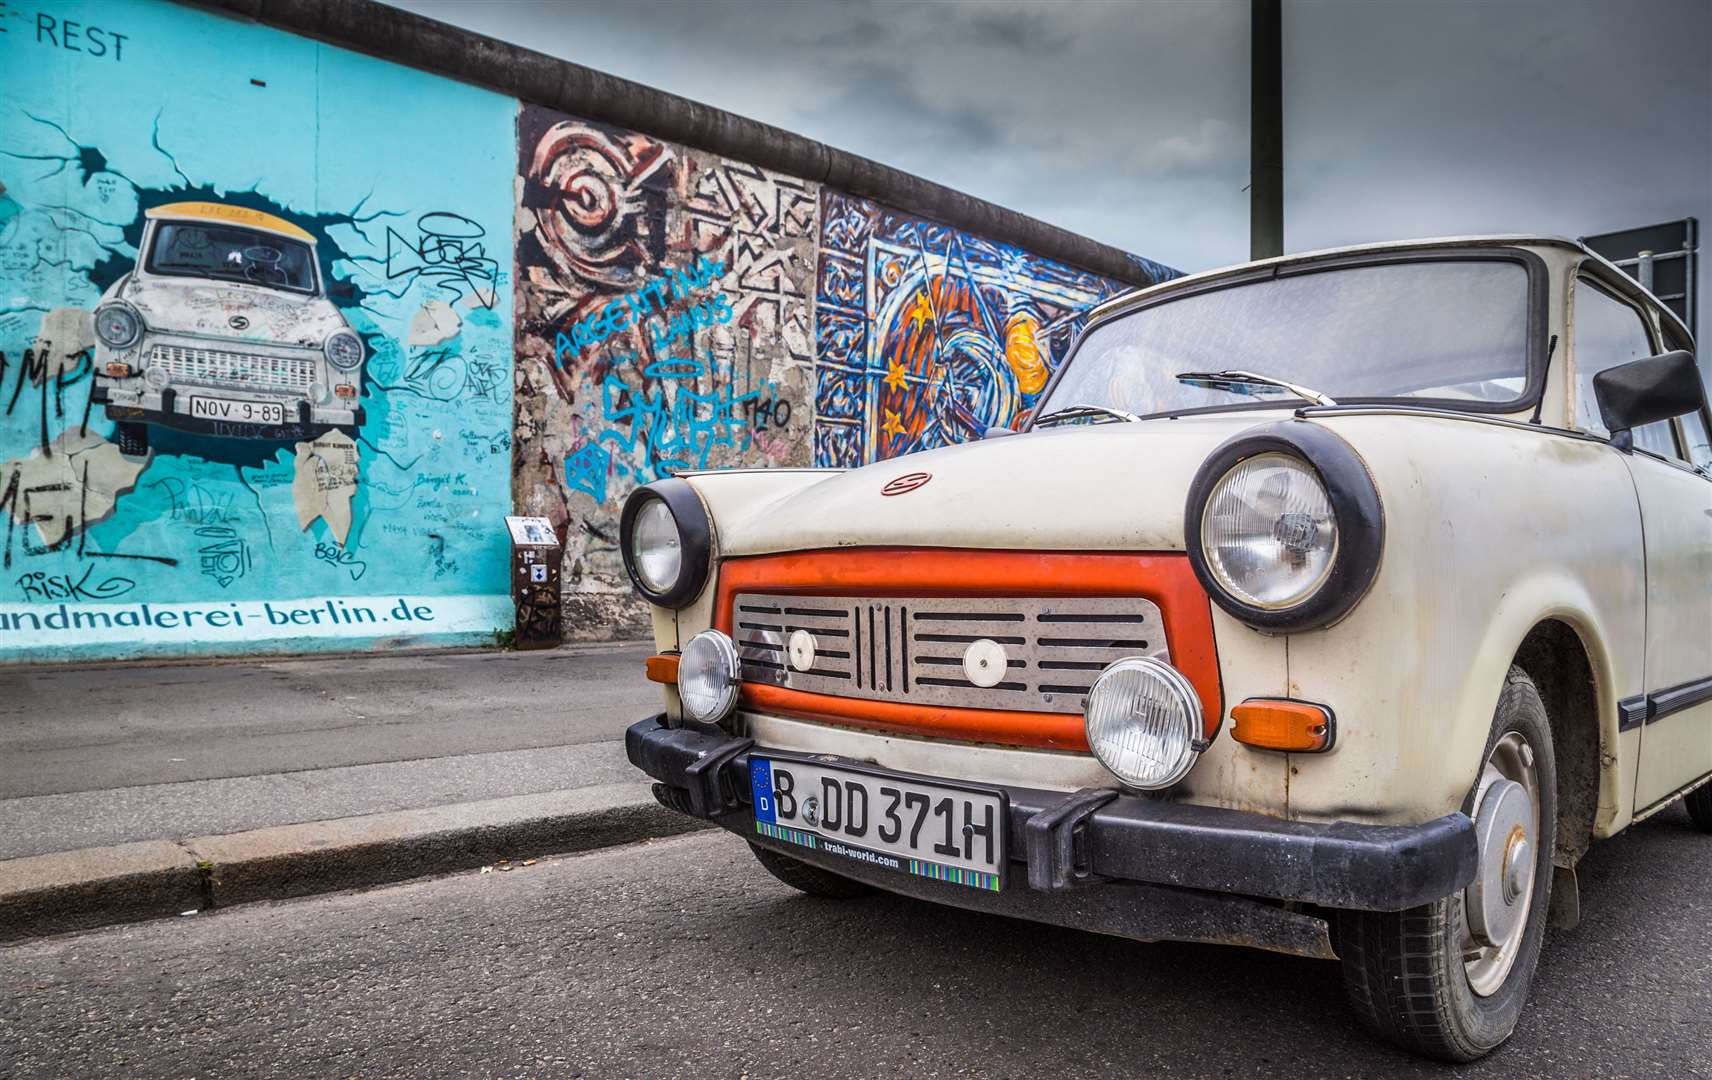 A Trabant car at the Berlin Wall